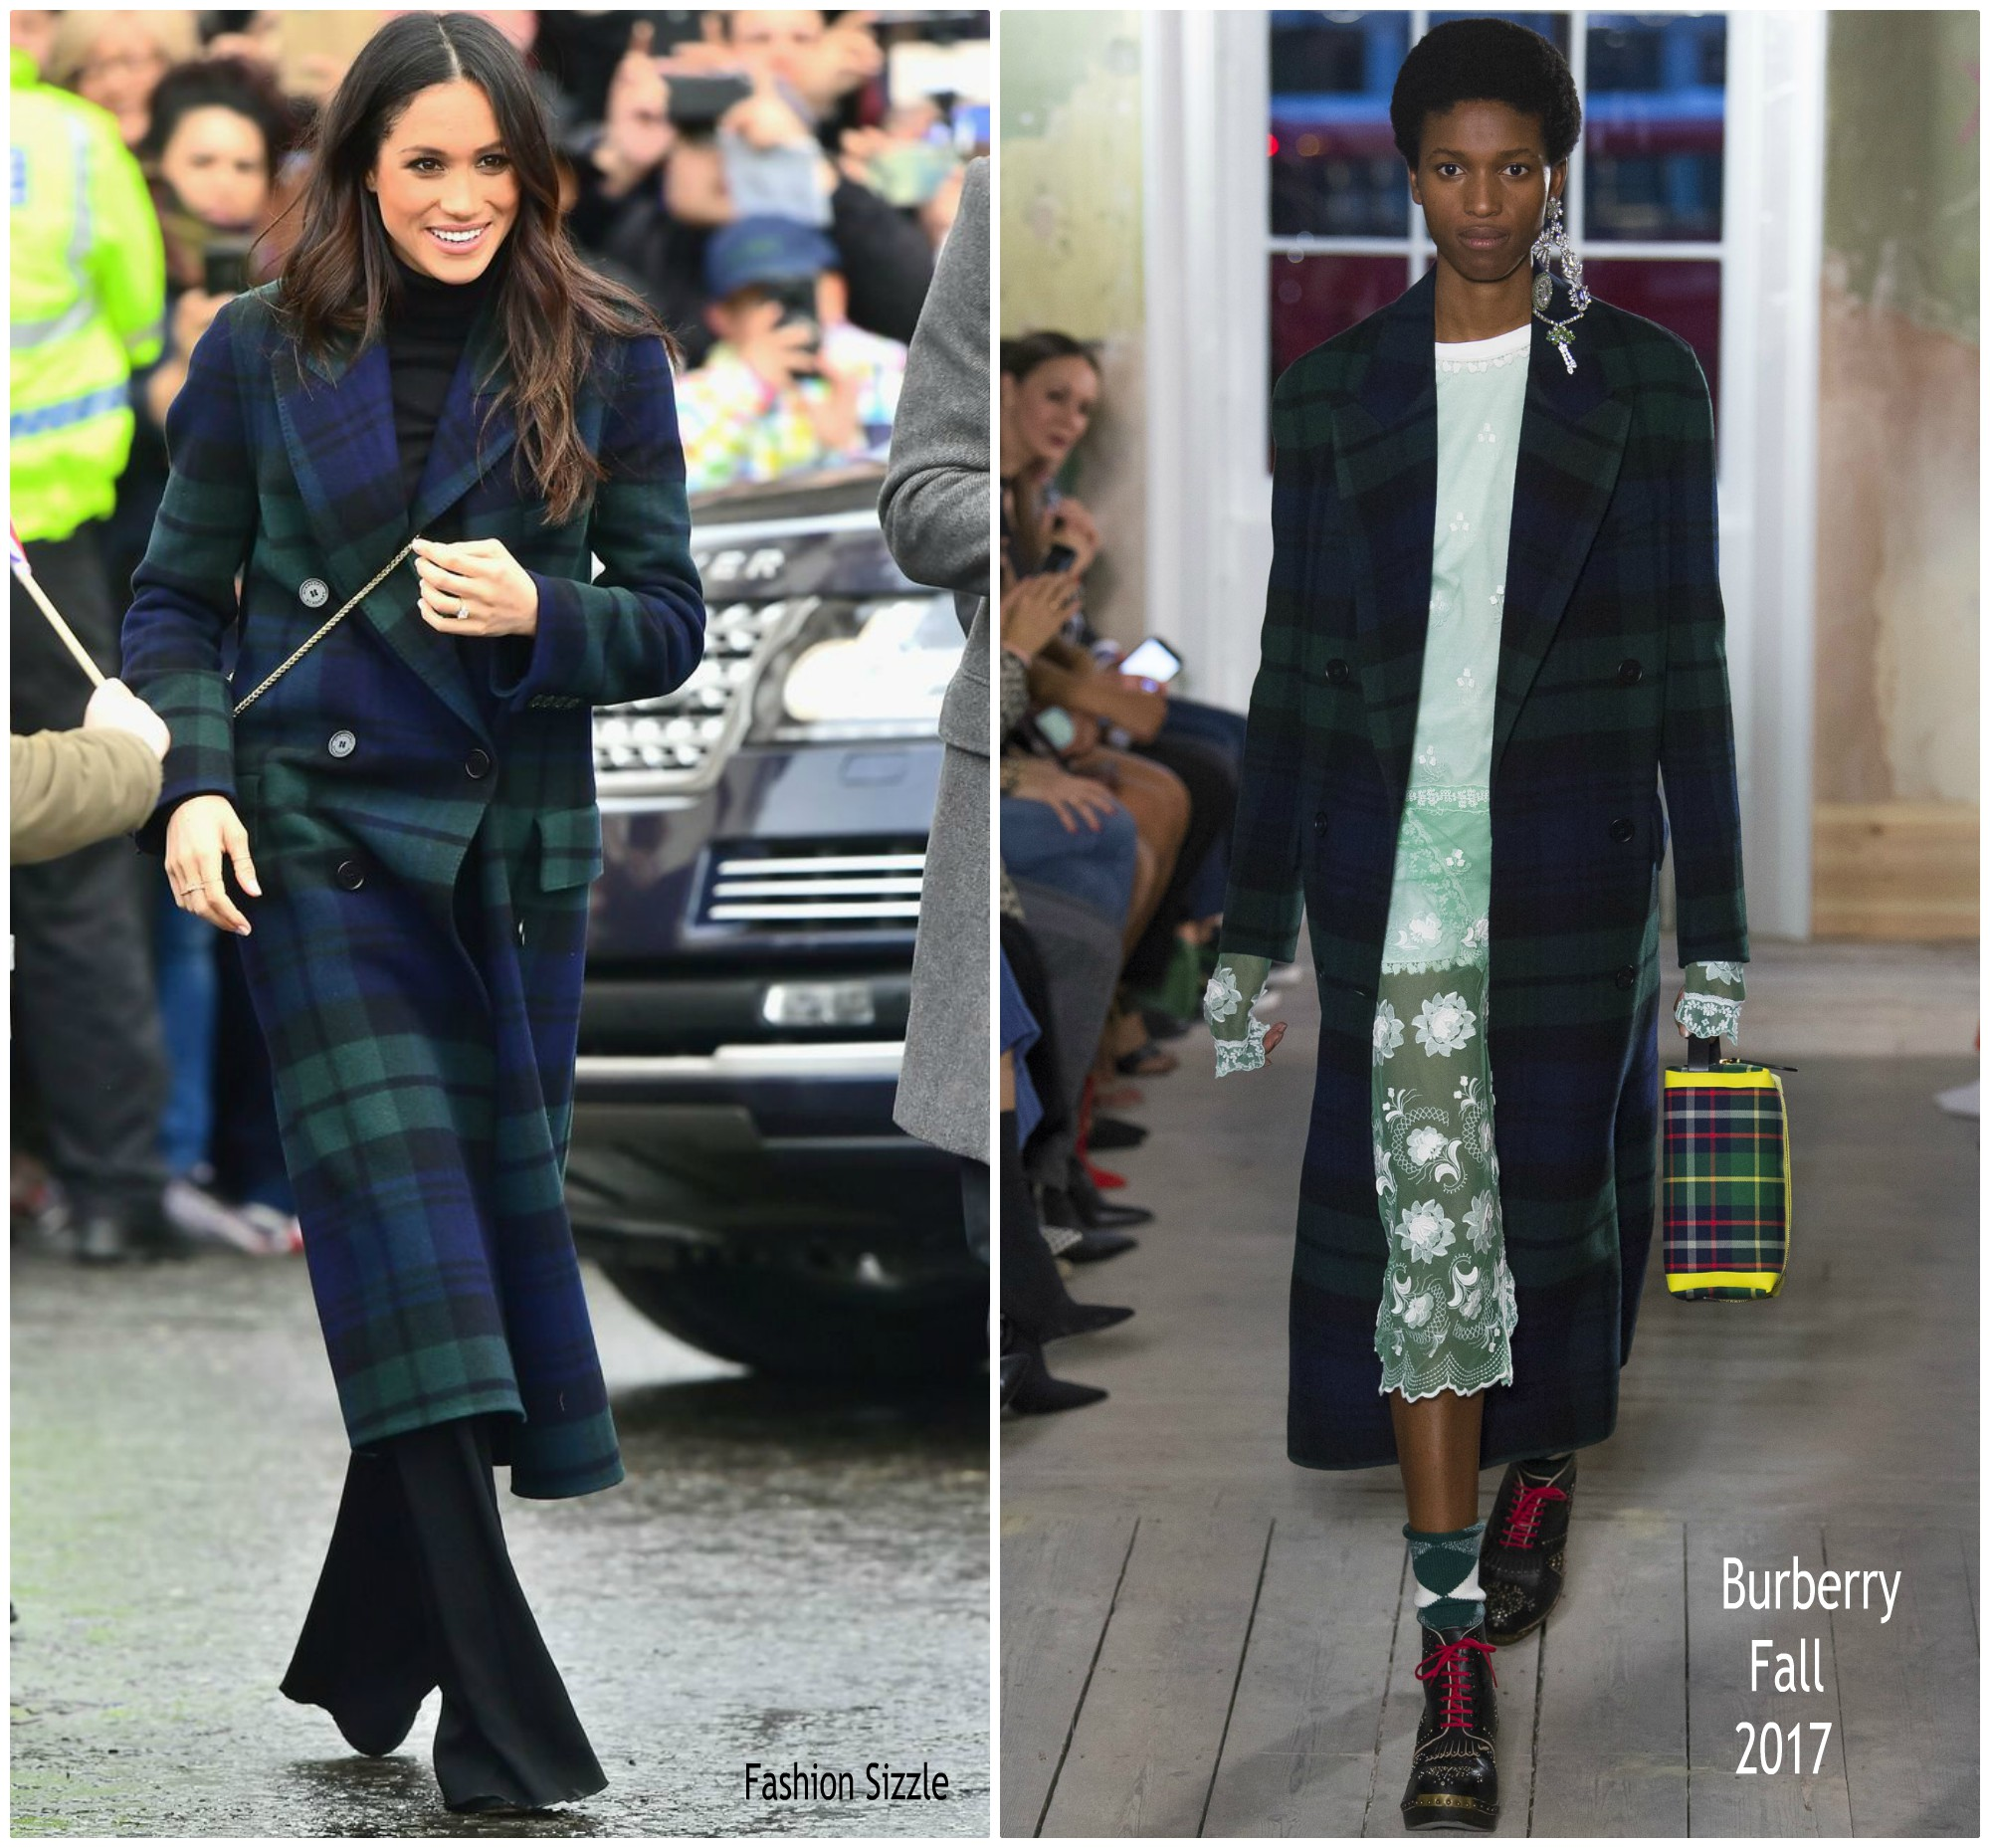 meghan-markle-in-burberry-veronica-beard-edinburgh-visit